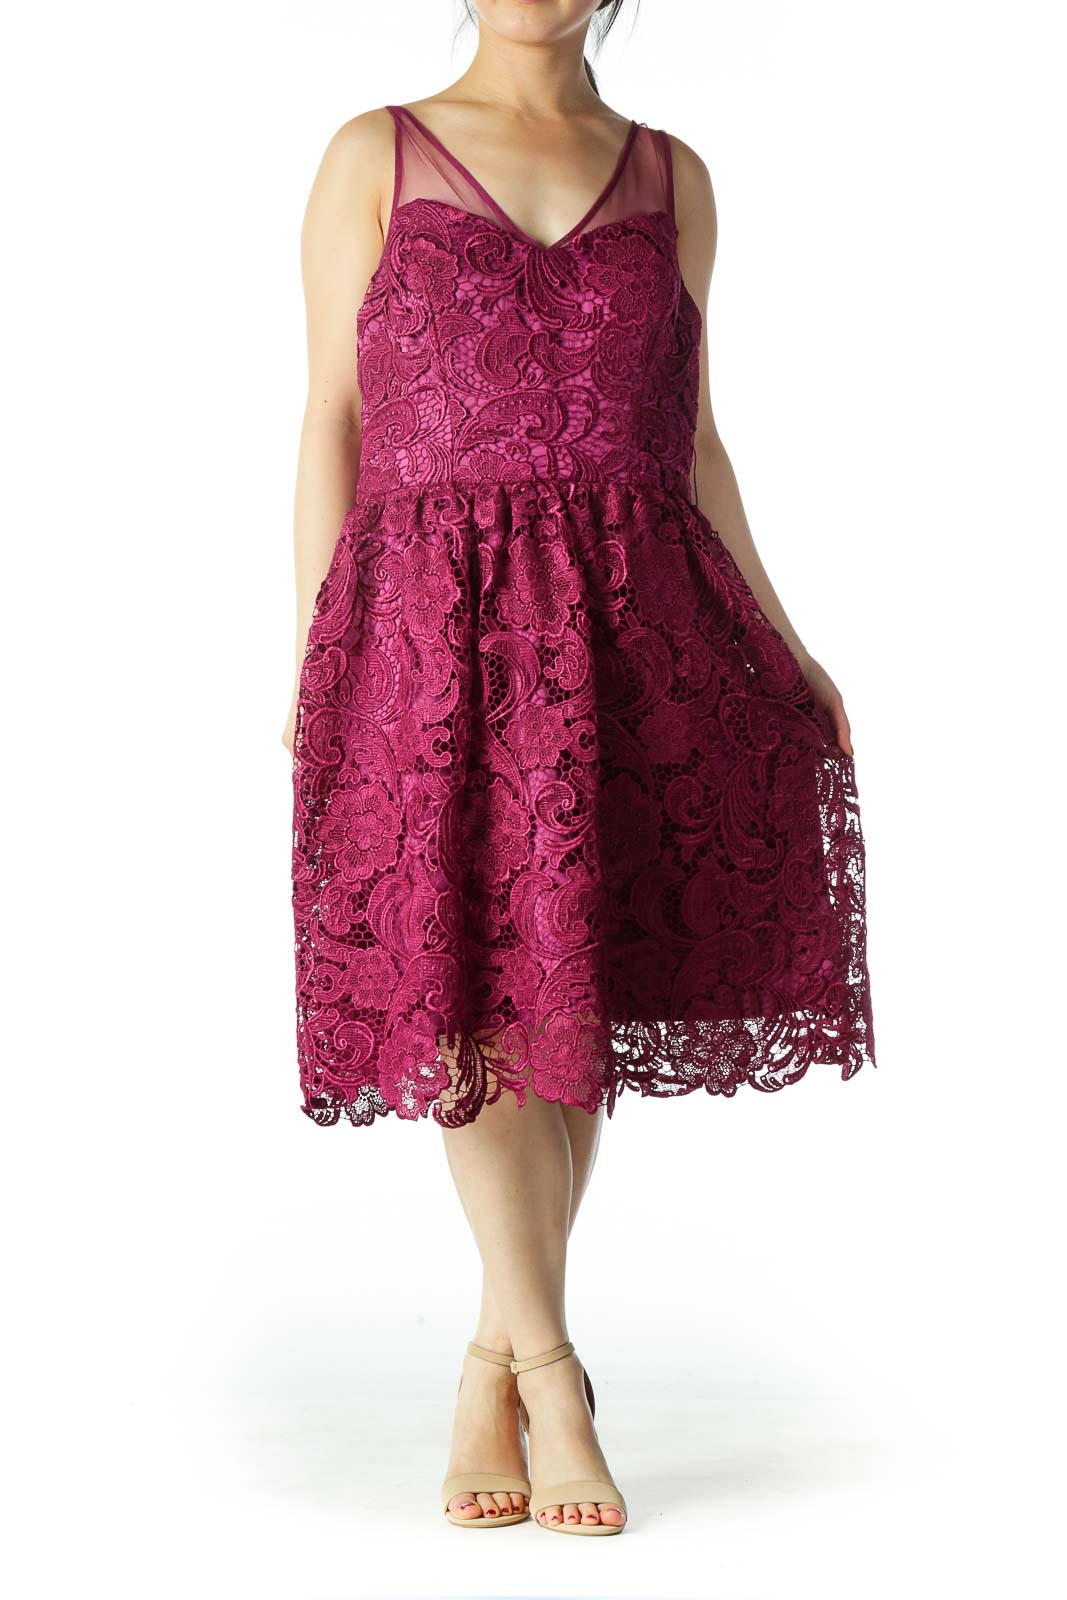 Purple Lace V-Neck Scalloped Cocktail Dress